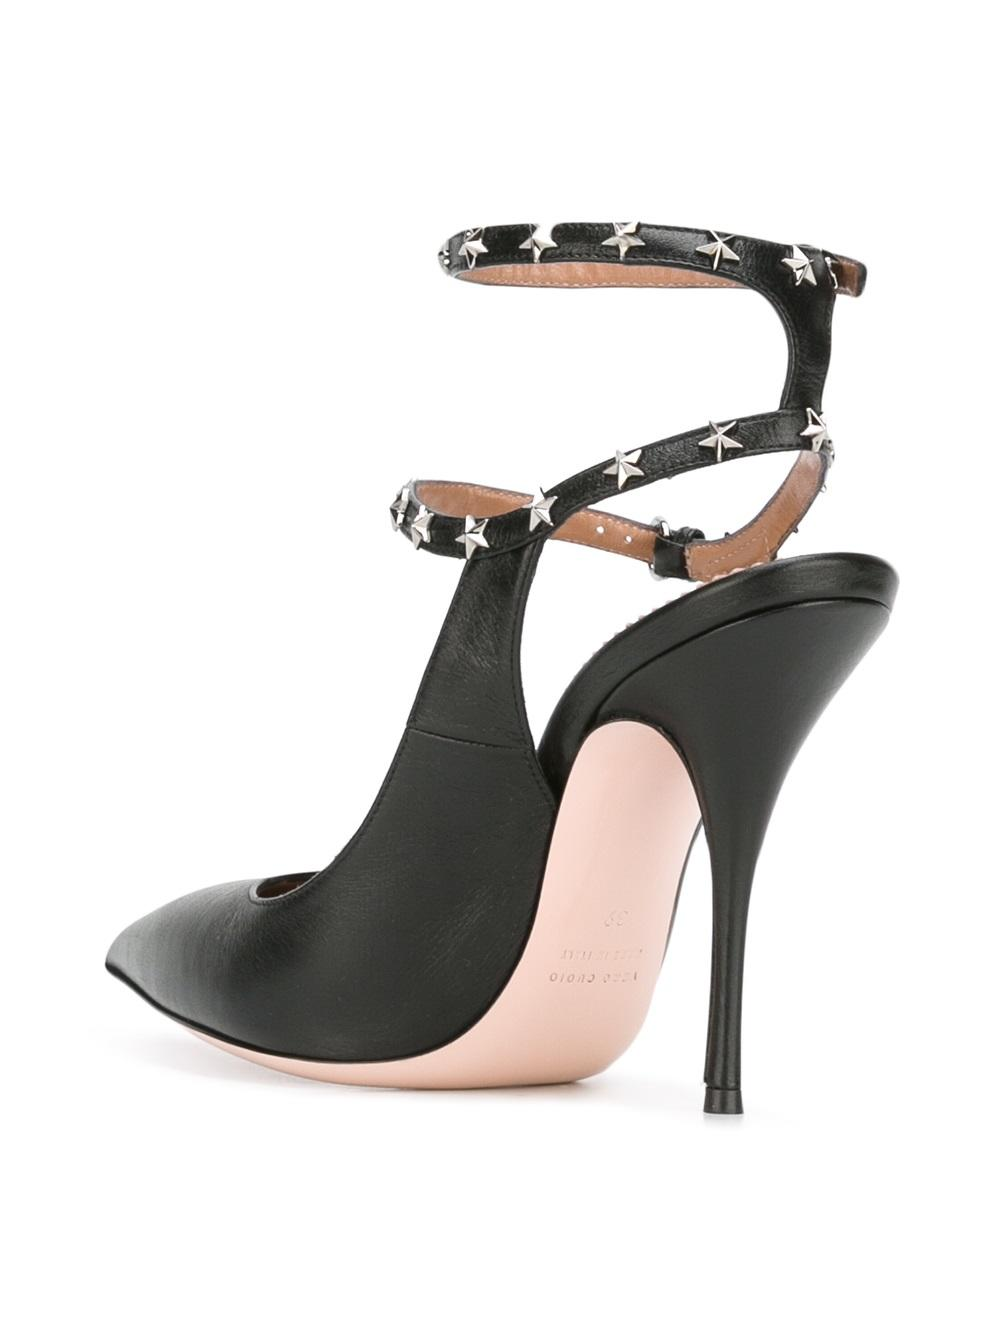 RED Valentino Ankle Strap High Heel